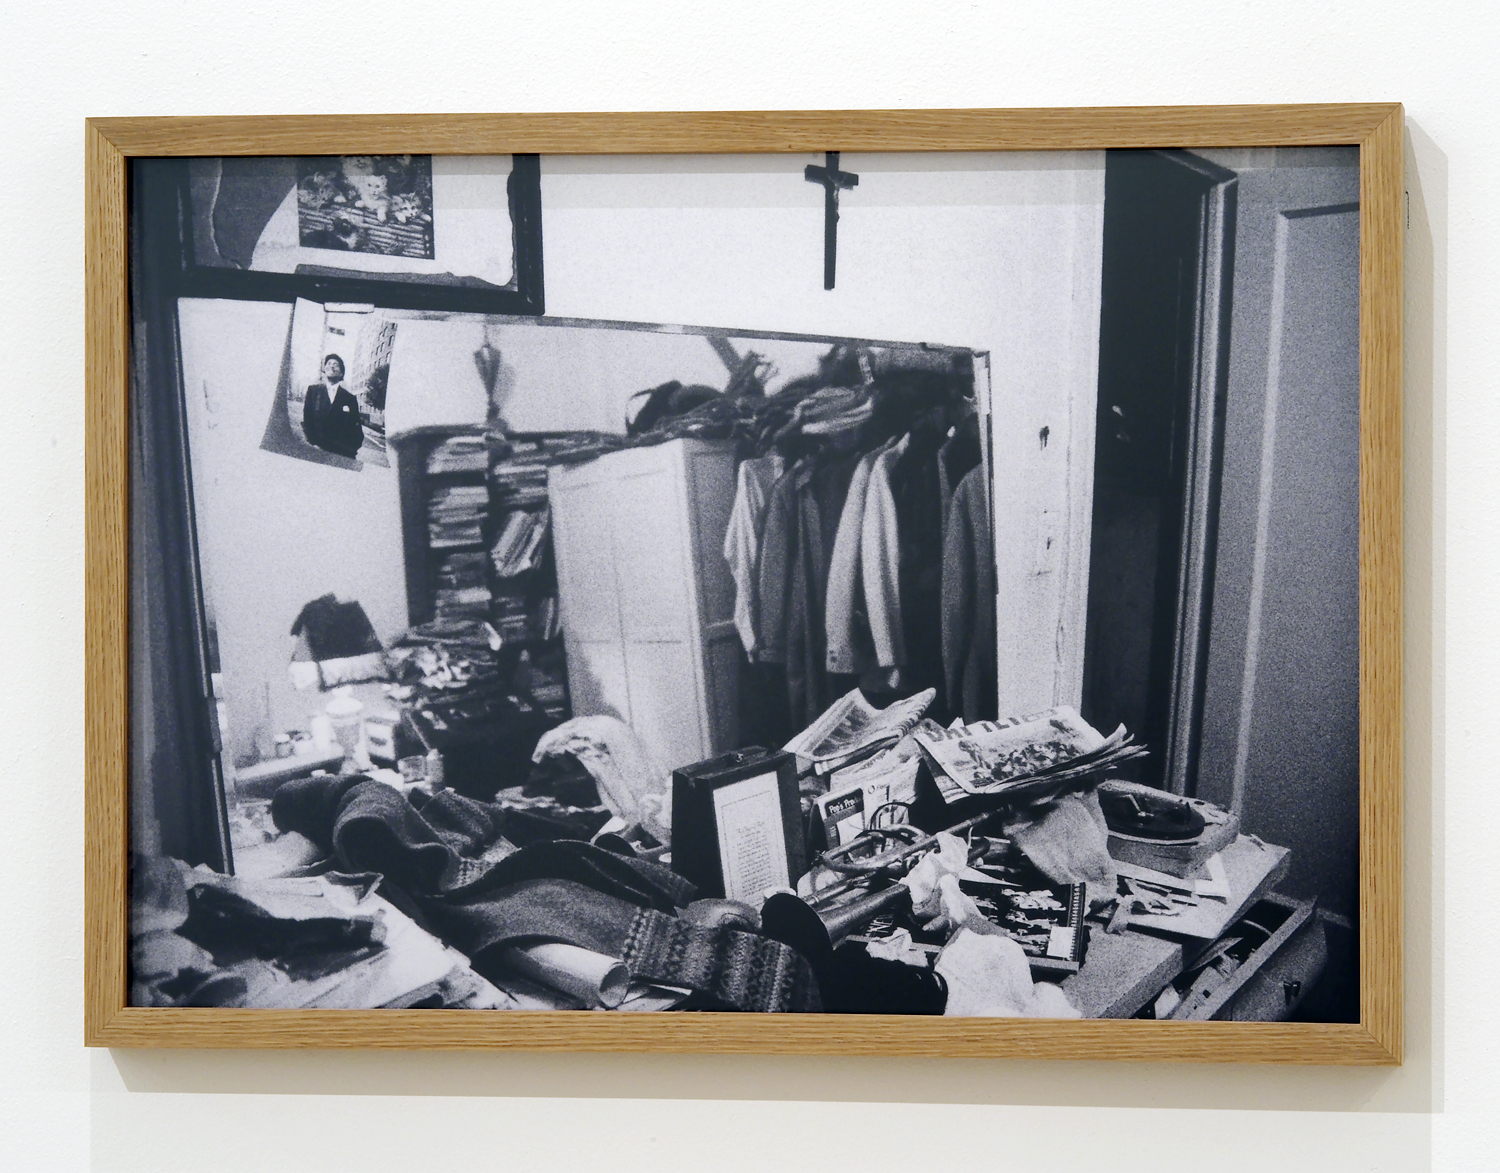 """Jacques Butler's home, East Village, NYC 2003"" digital print, 48 x 67 cm (Photo: Albane Sharrard)"